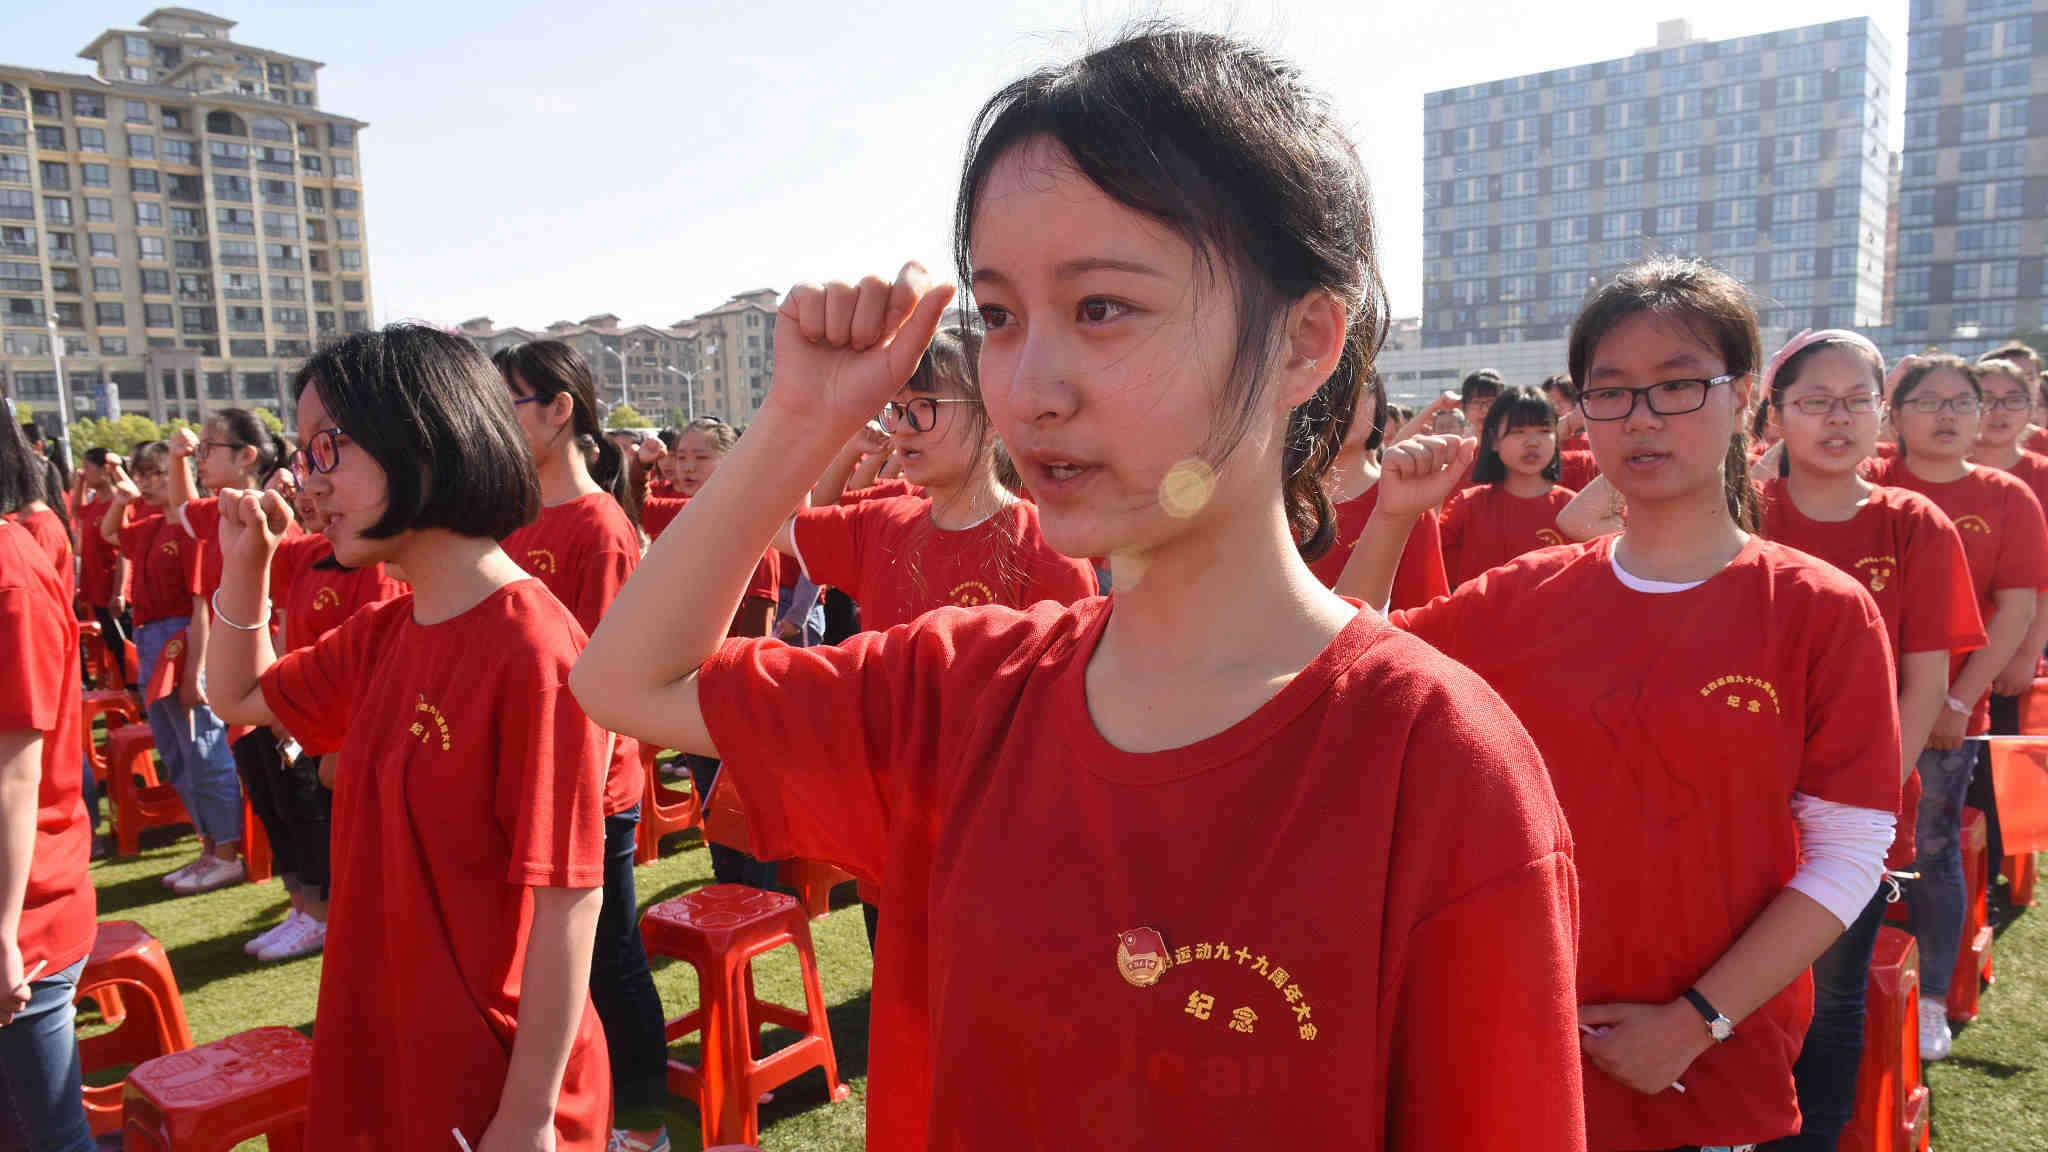 Young people's values determine the future of China